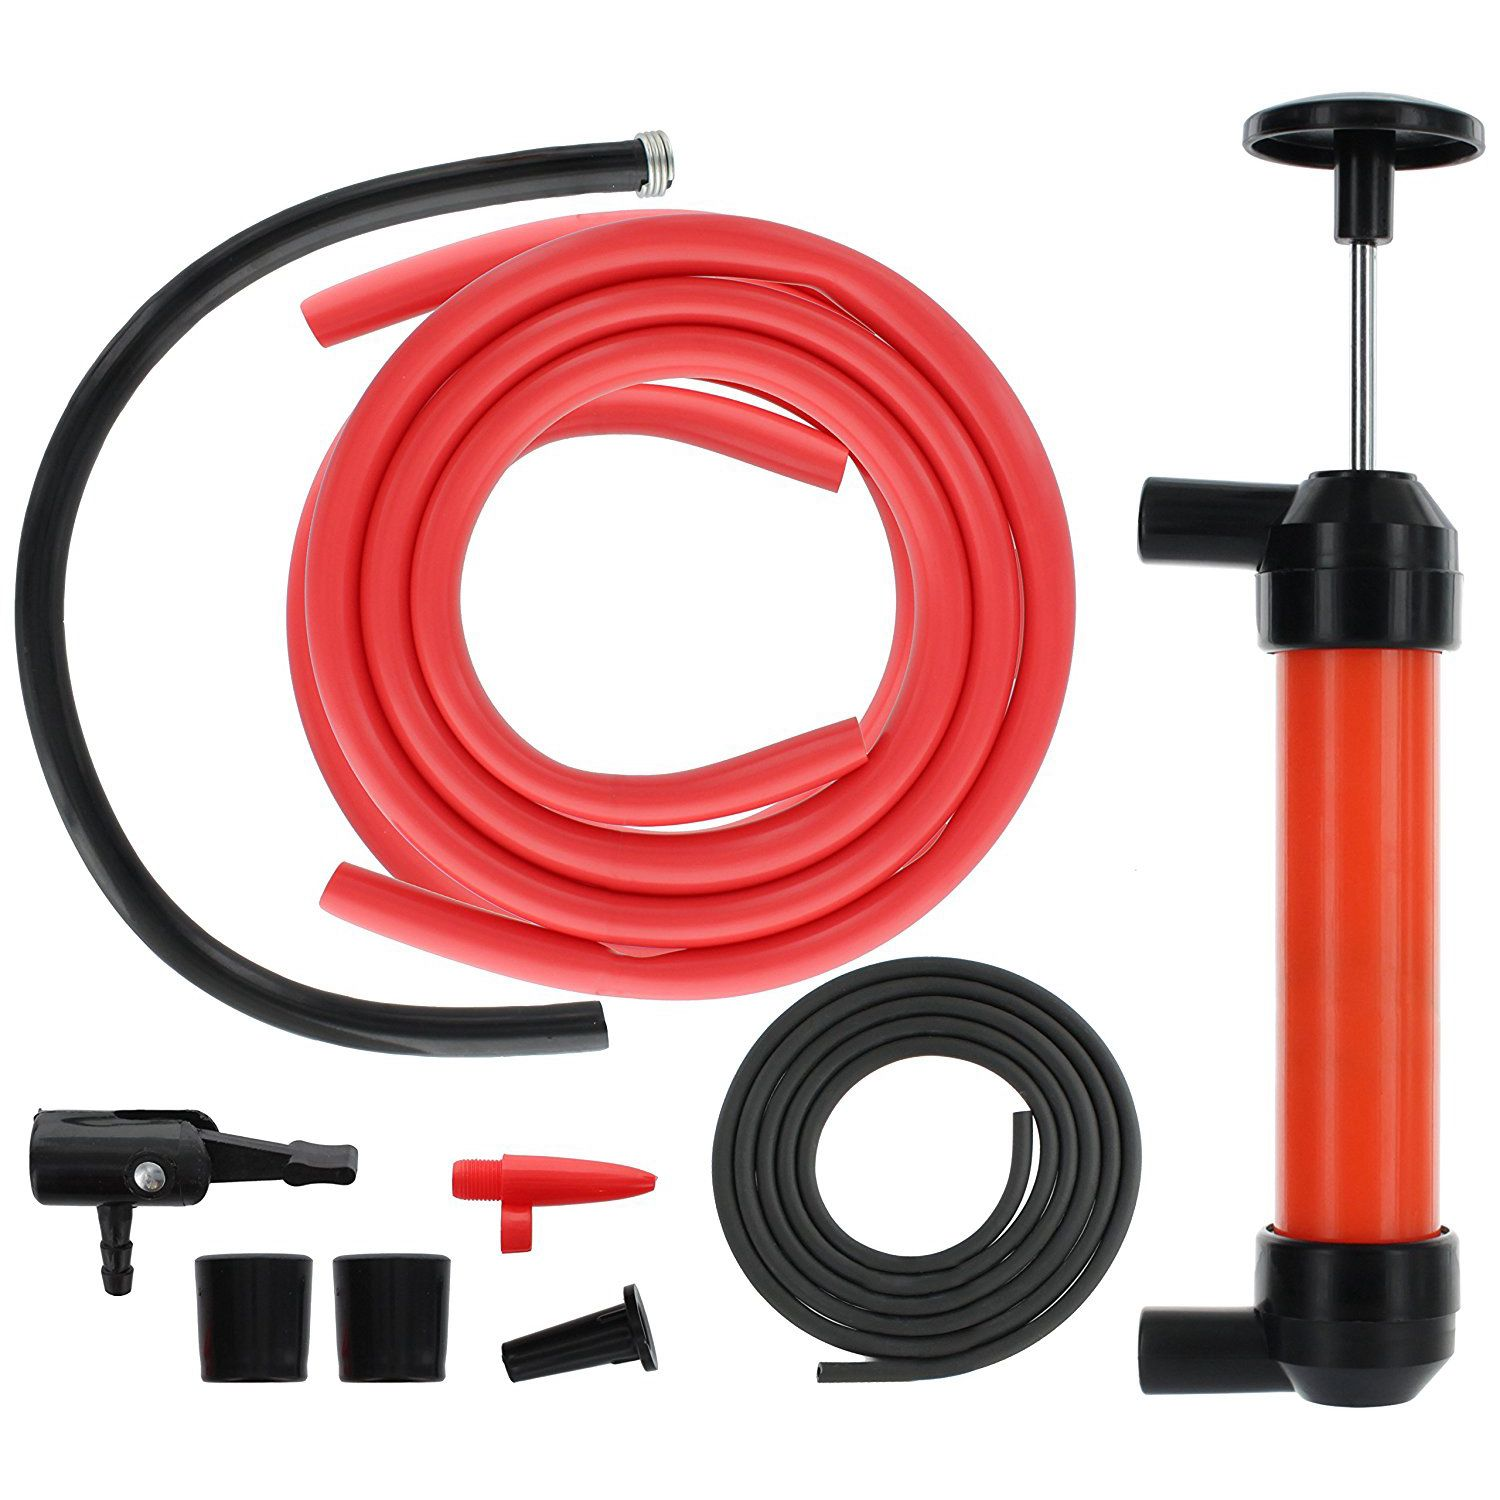 Multi-Purpose Siphon Transfer Pump Kit With Dipstick Tube | Fluid Fuel Extractor Suction Tool For Oil/Gasoline/ Water Etc